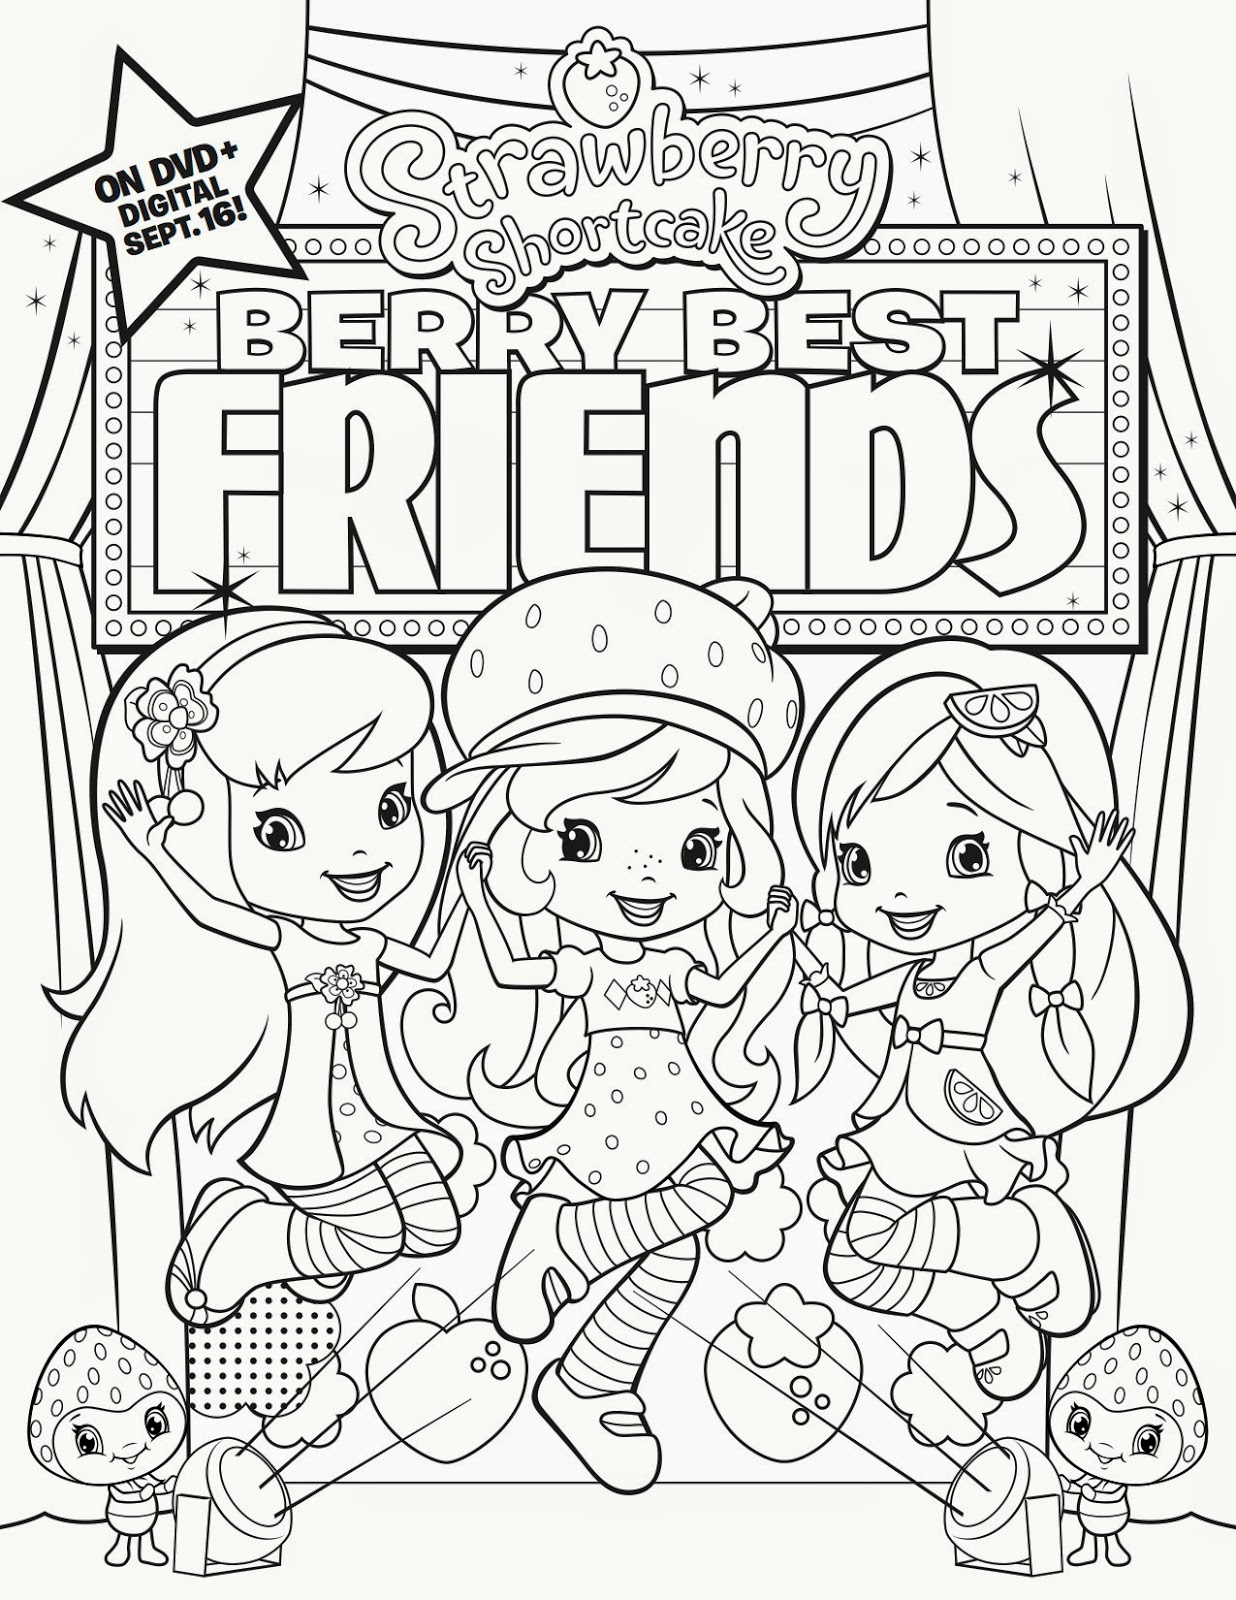 Free Coloring Pages Strawberry Shortcake